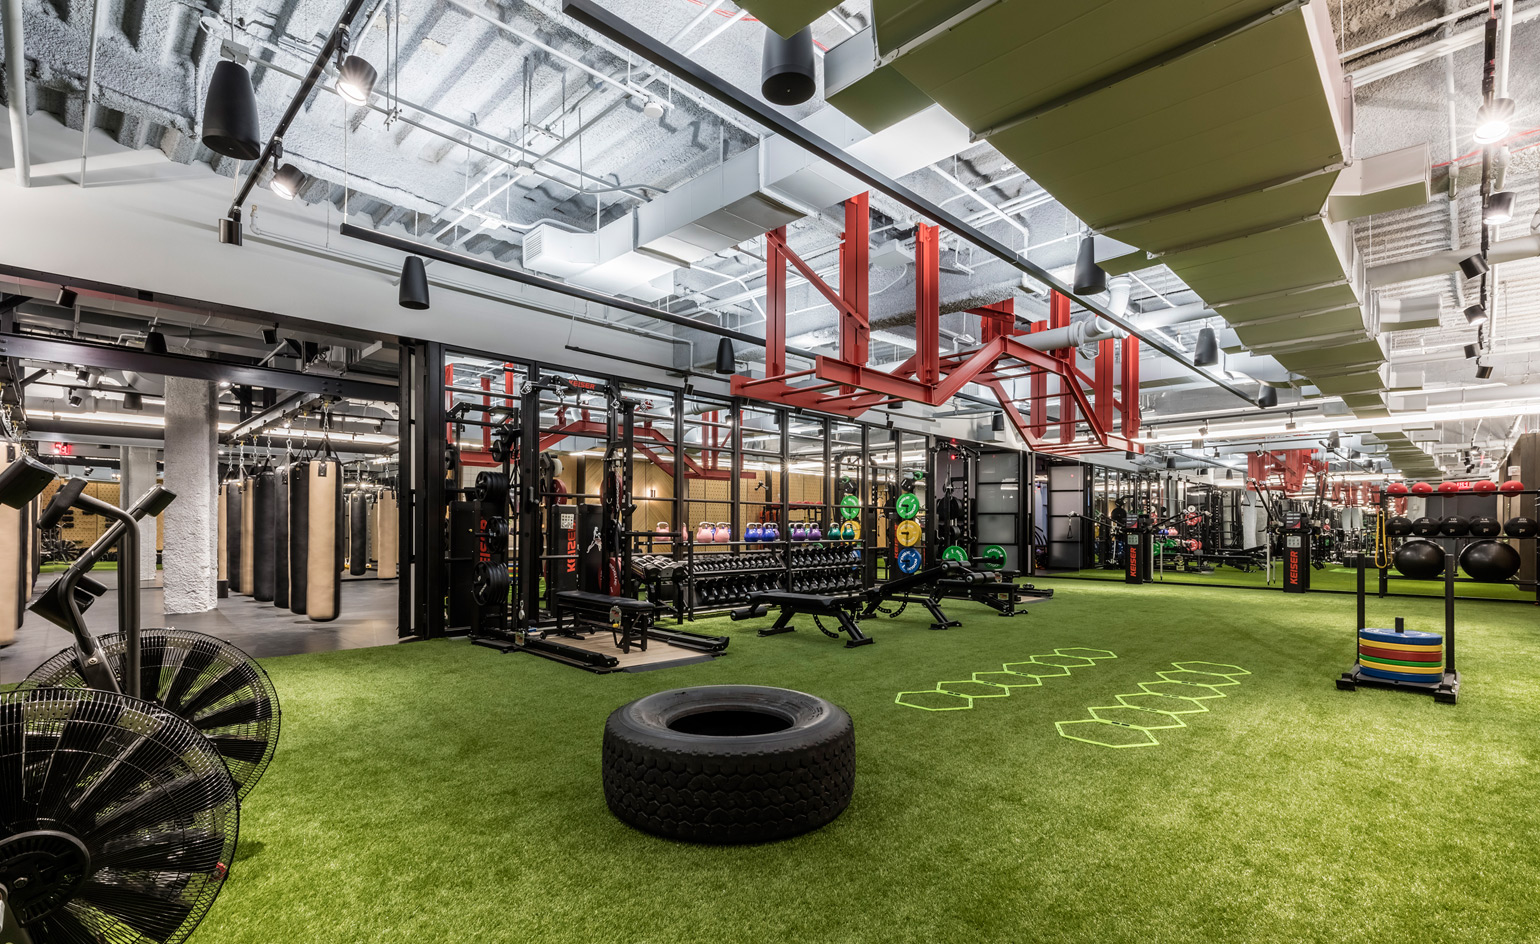 Wework gets physical with its first gym and wellness club - Interior design jobs washington state ...